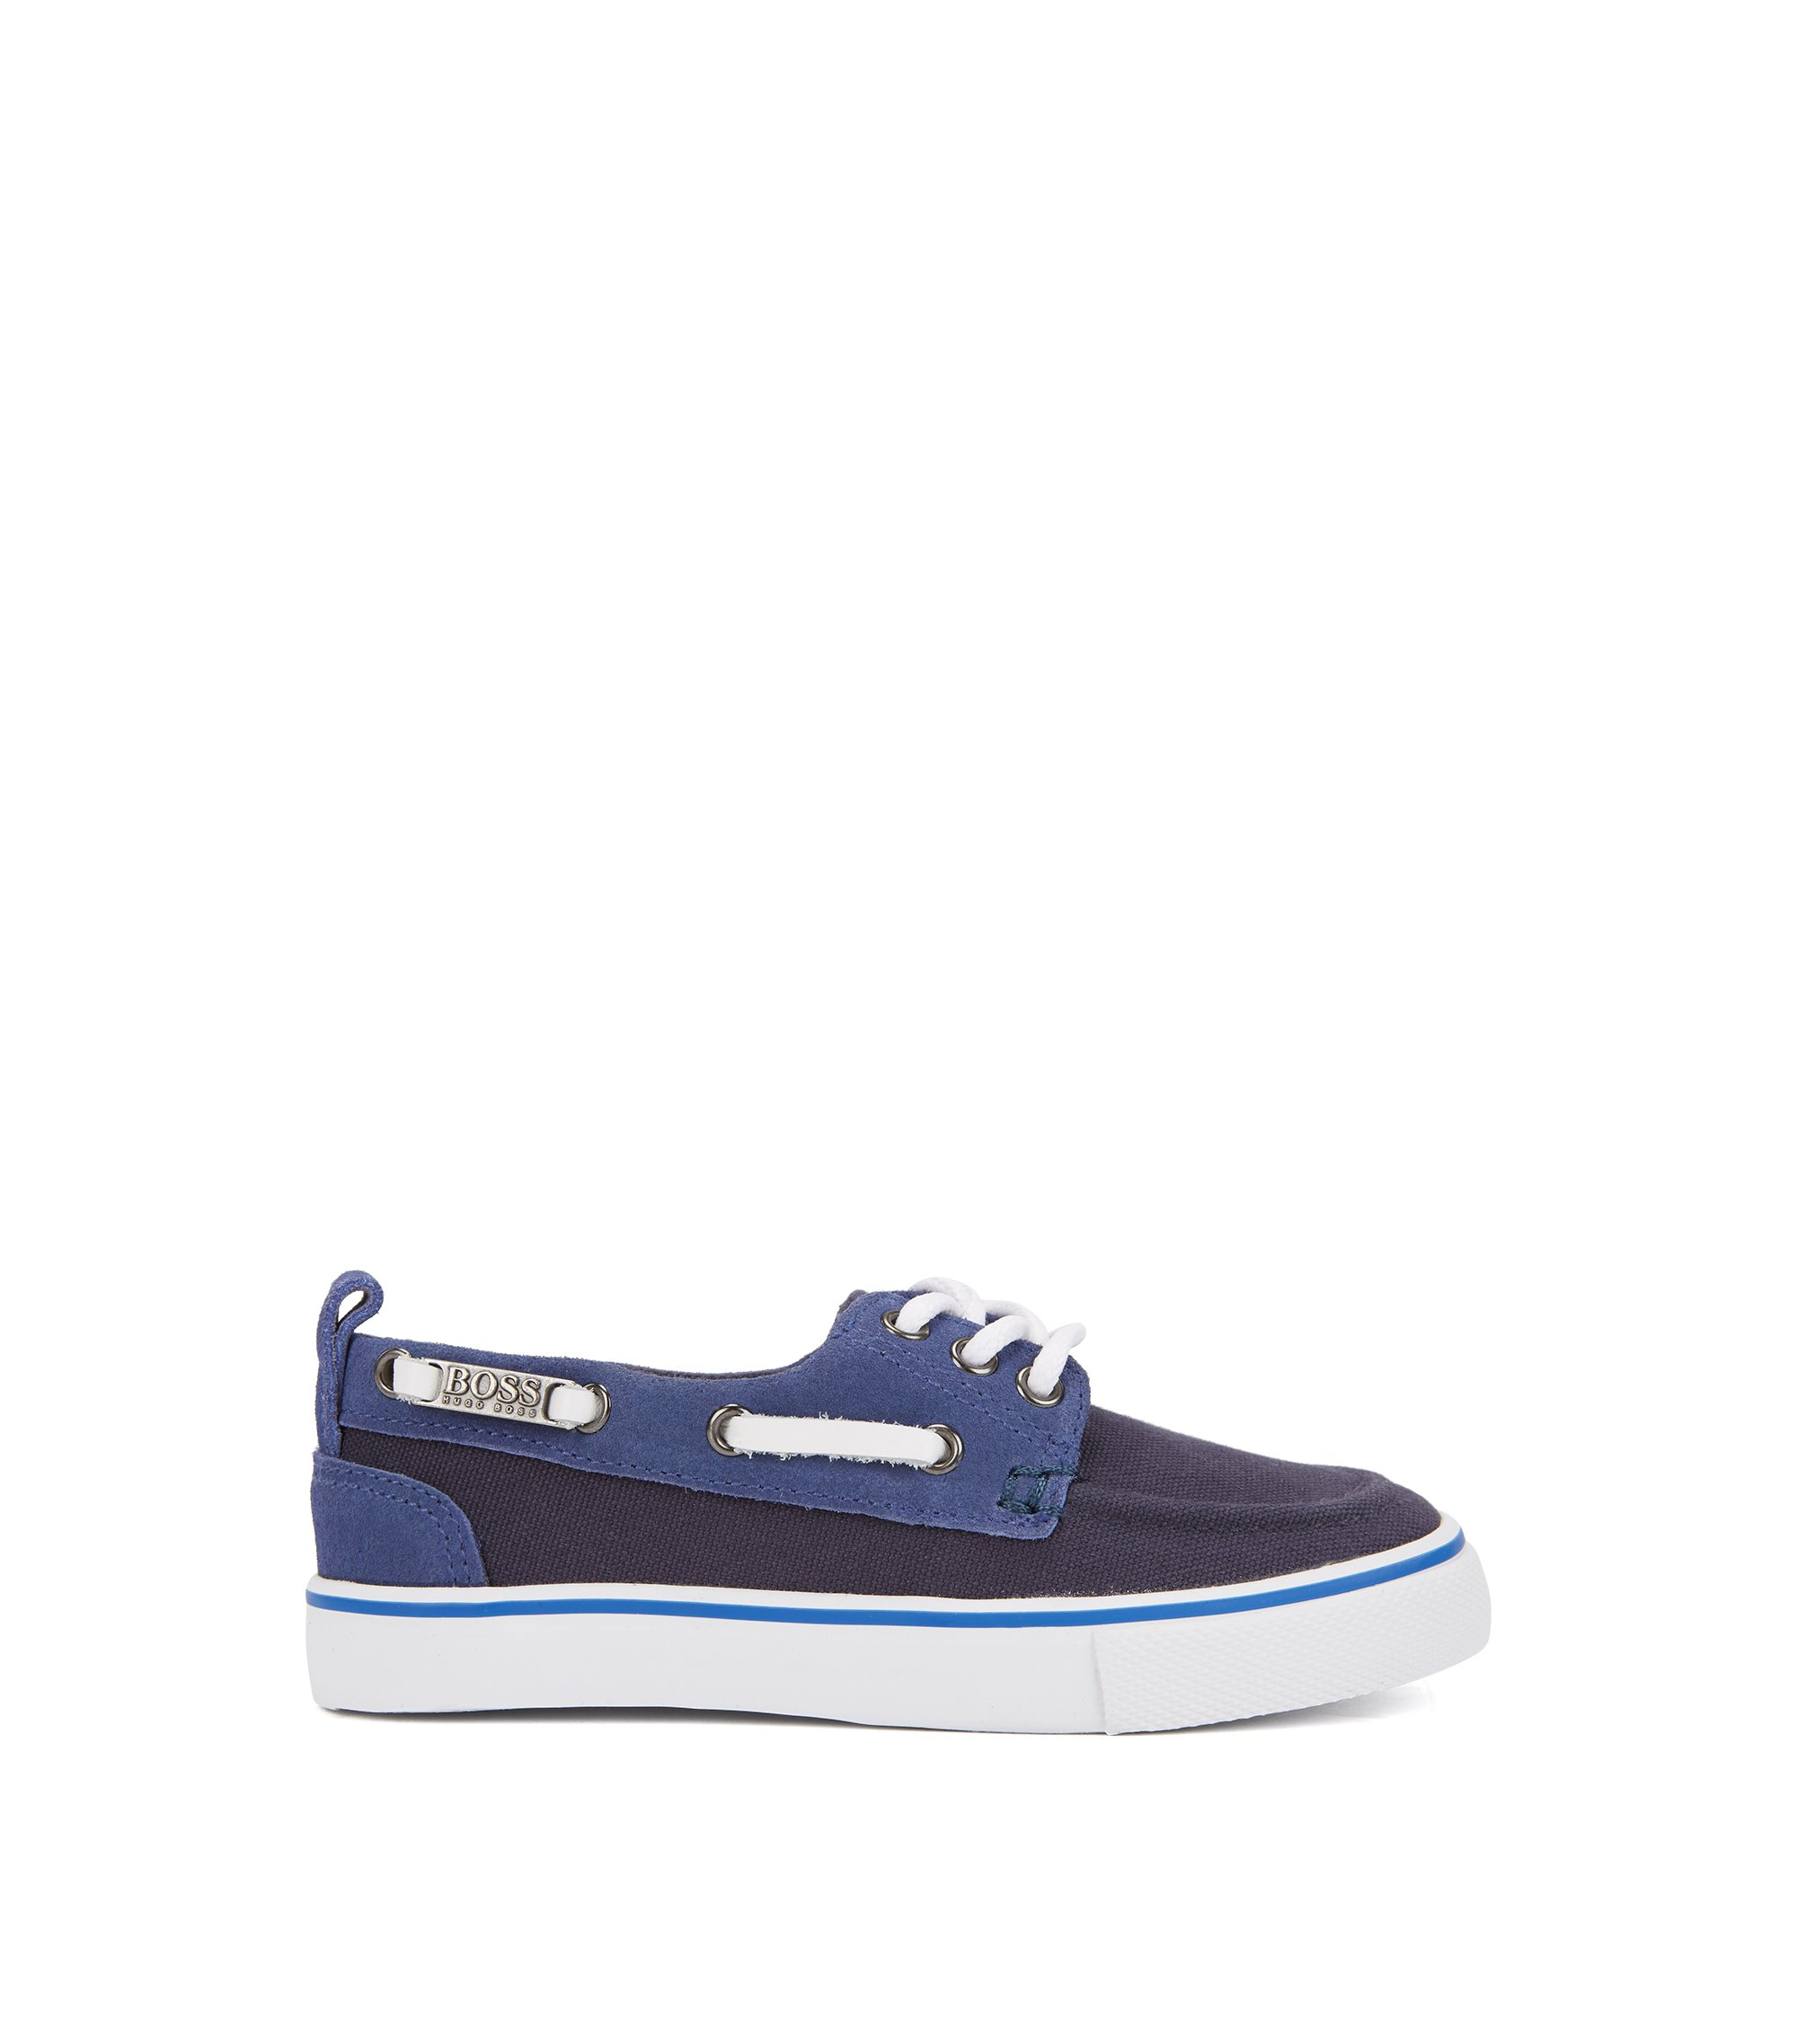 Kids' boat shoes in cotton canvas, Dark Blue